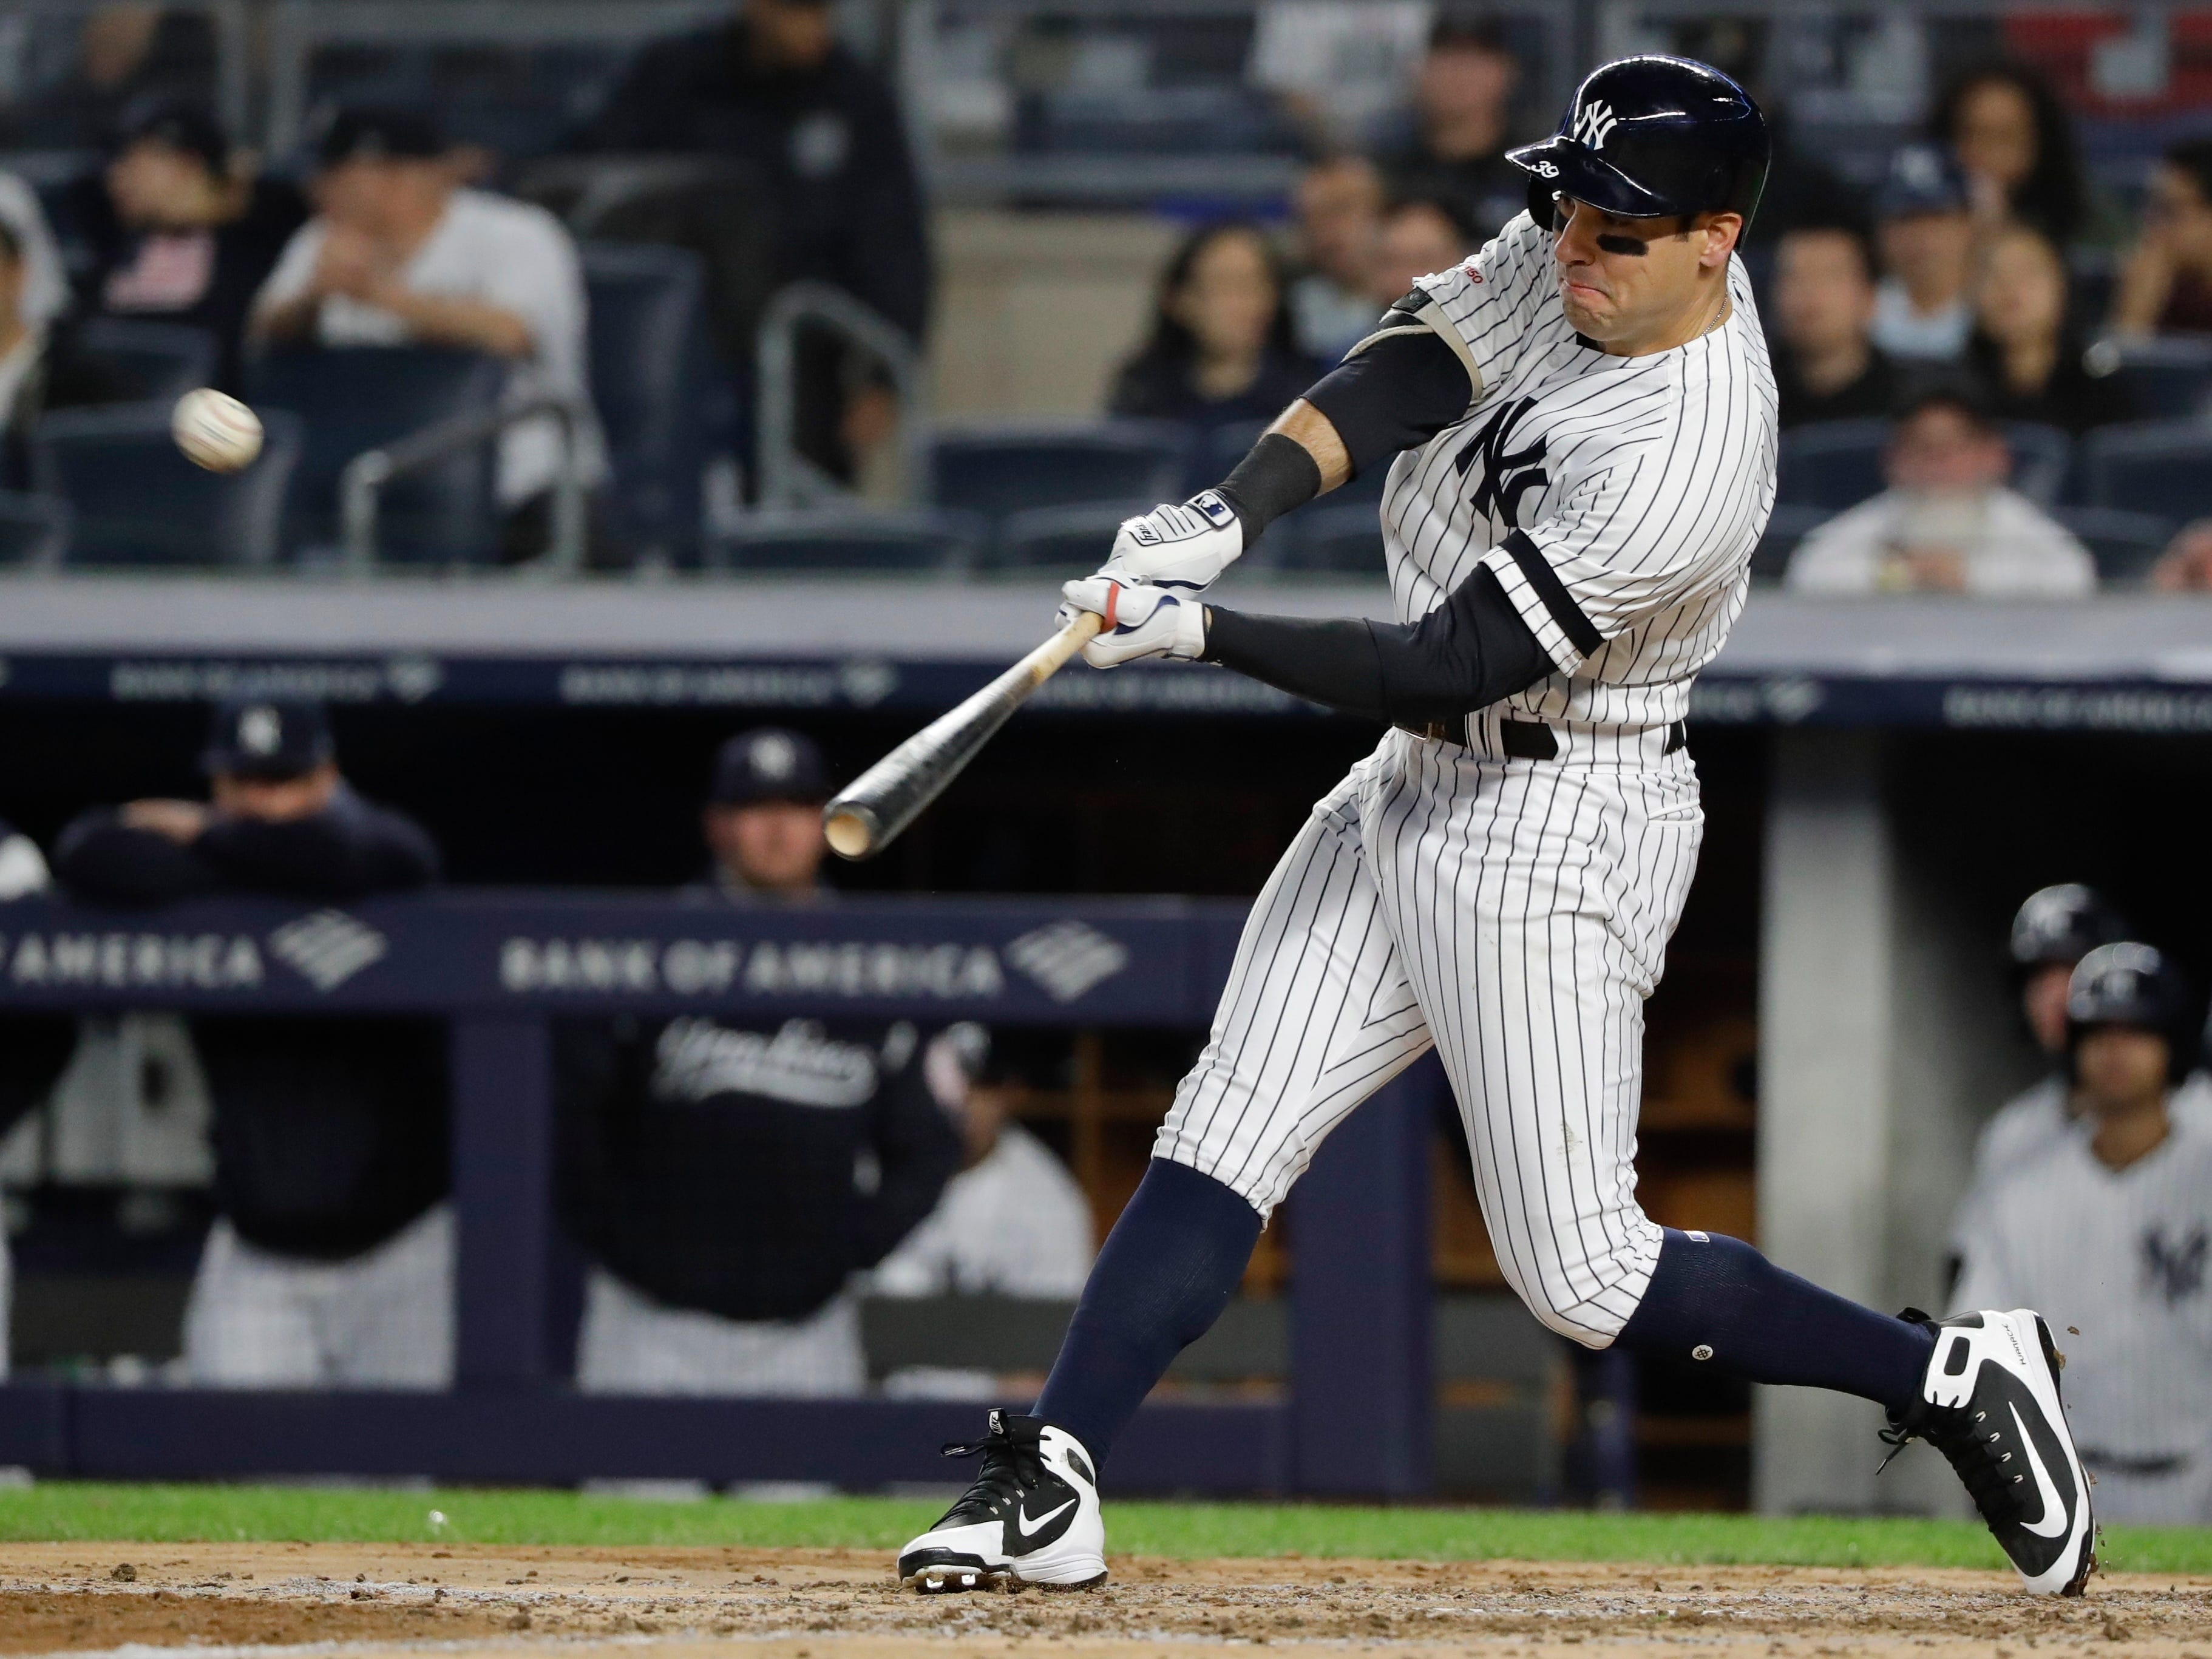 New York Yankees' Mike Tauchman hits a home run during the fifth inning of a  game against the Kansas City Royals, Friday, April 19, 2019, in New York.